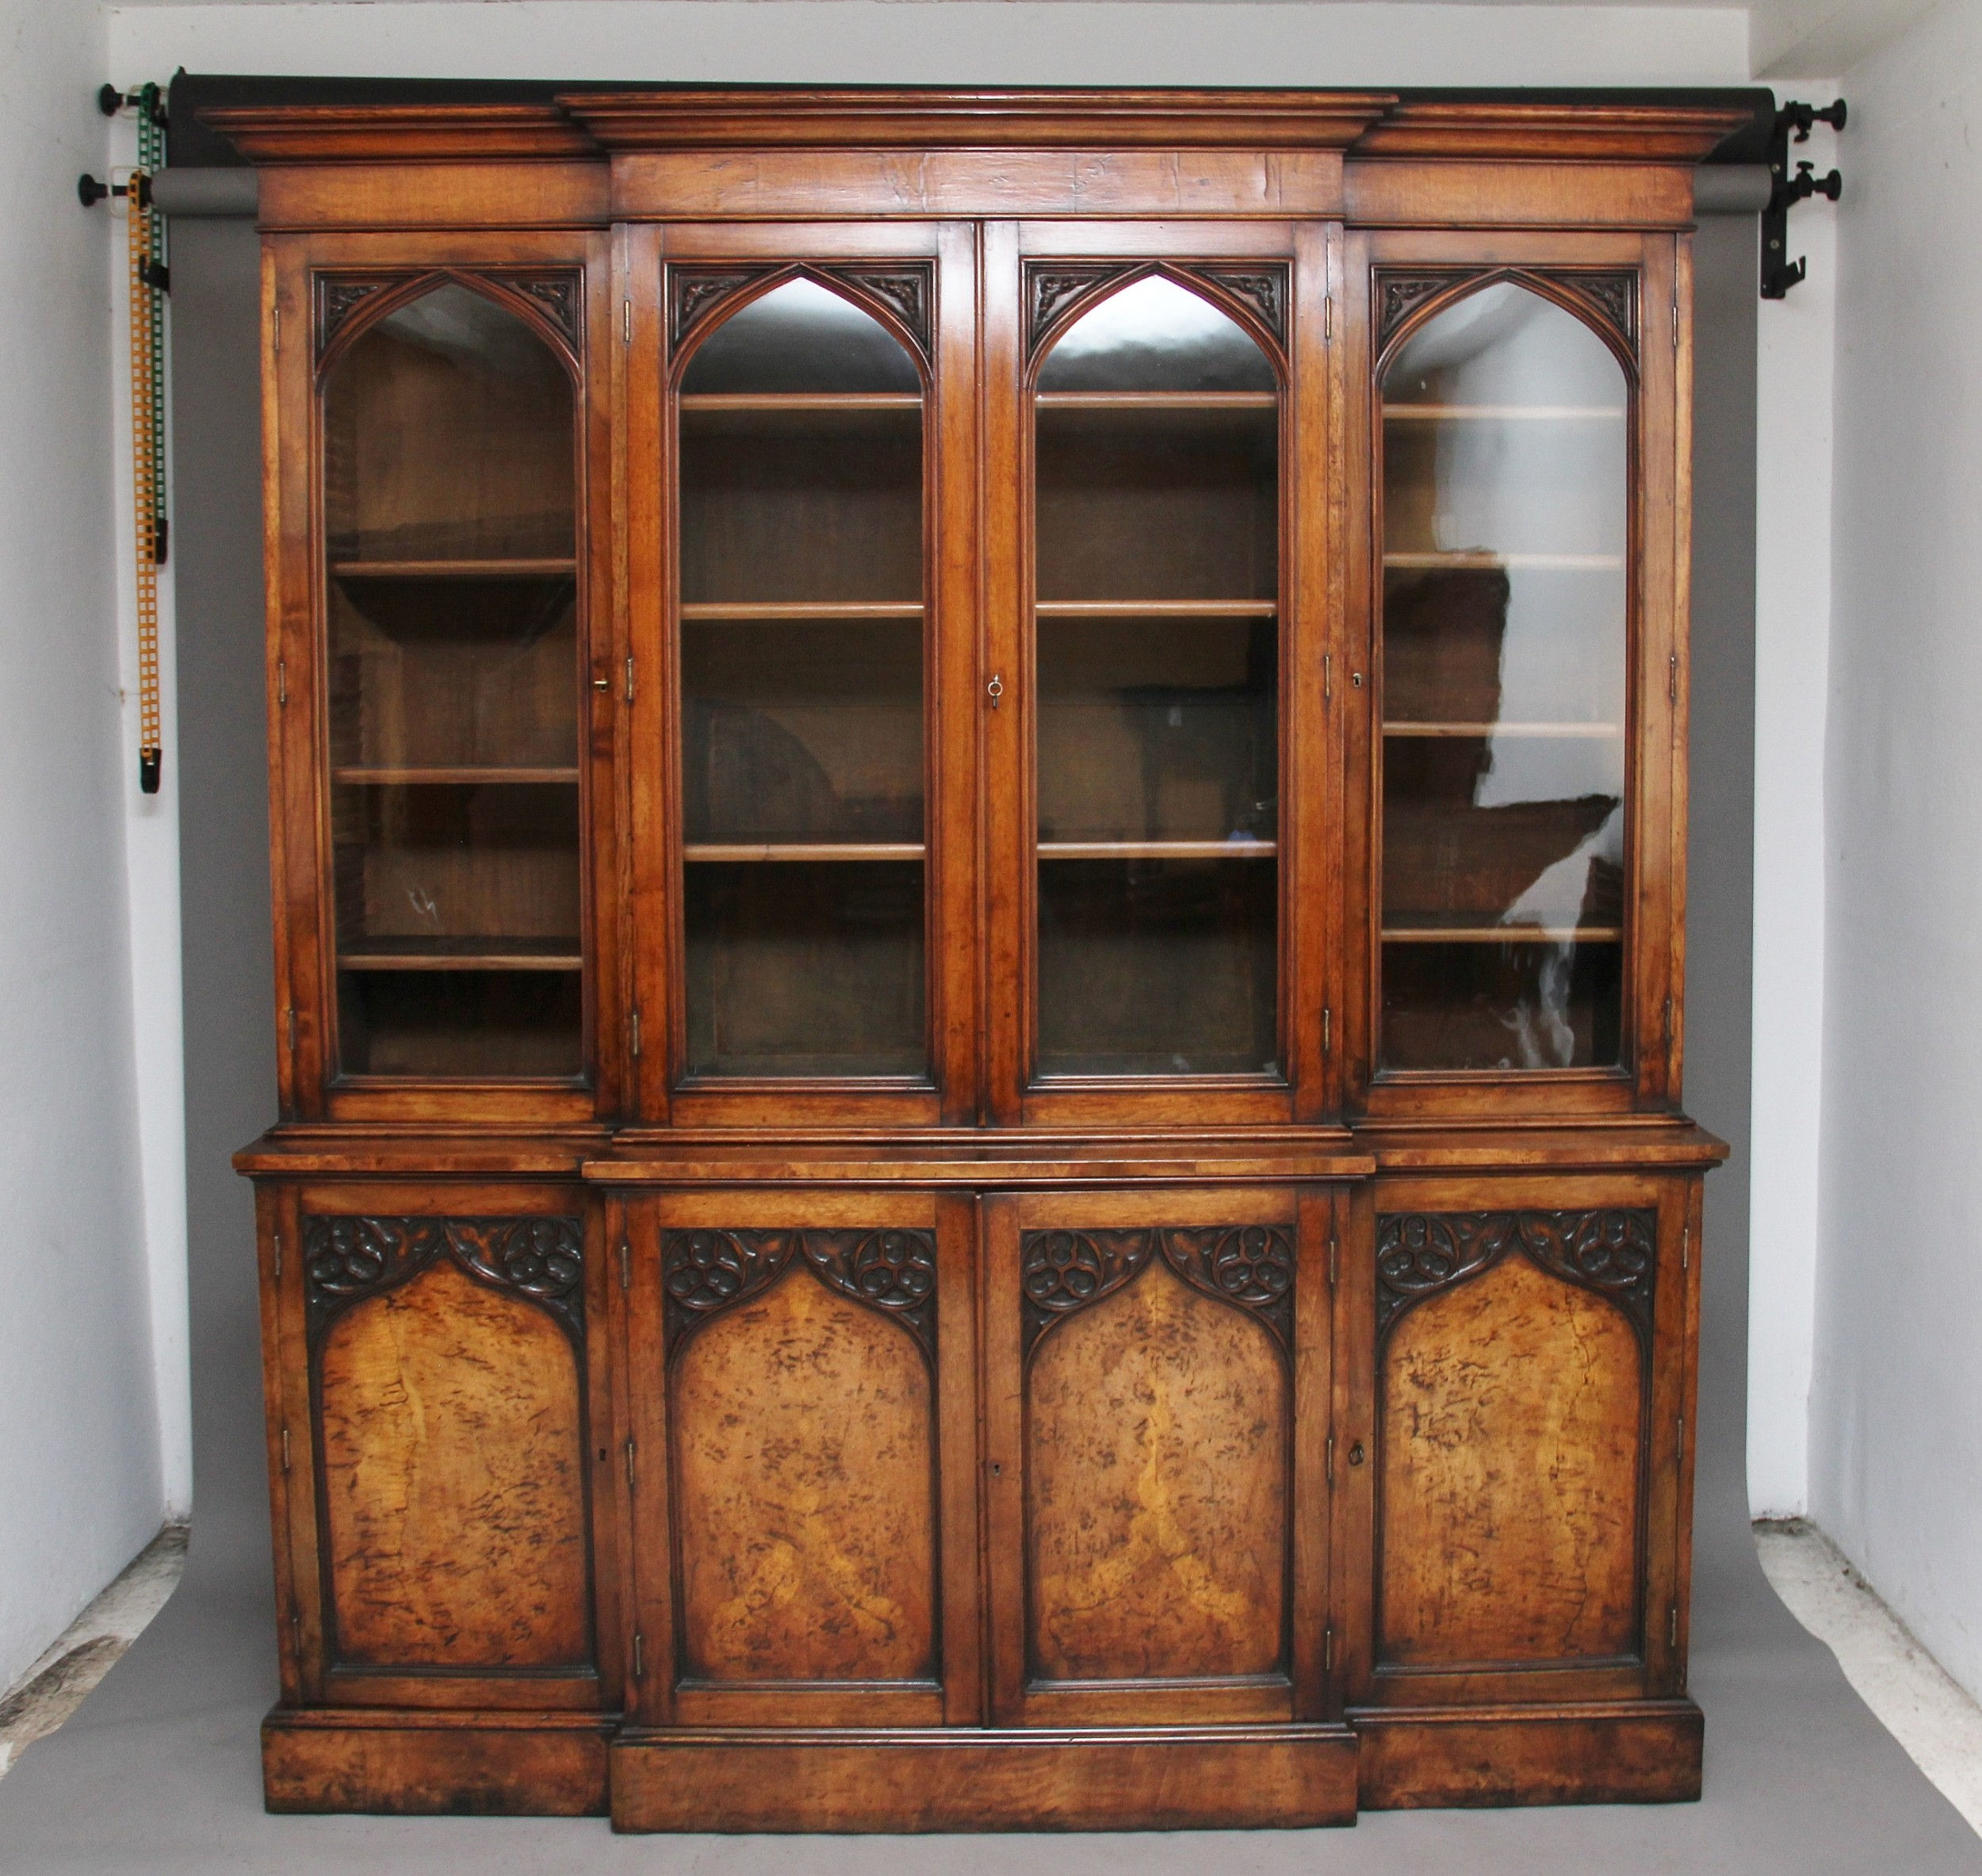 early 19th century pollard oak bookcase